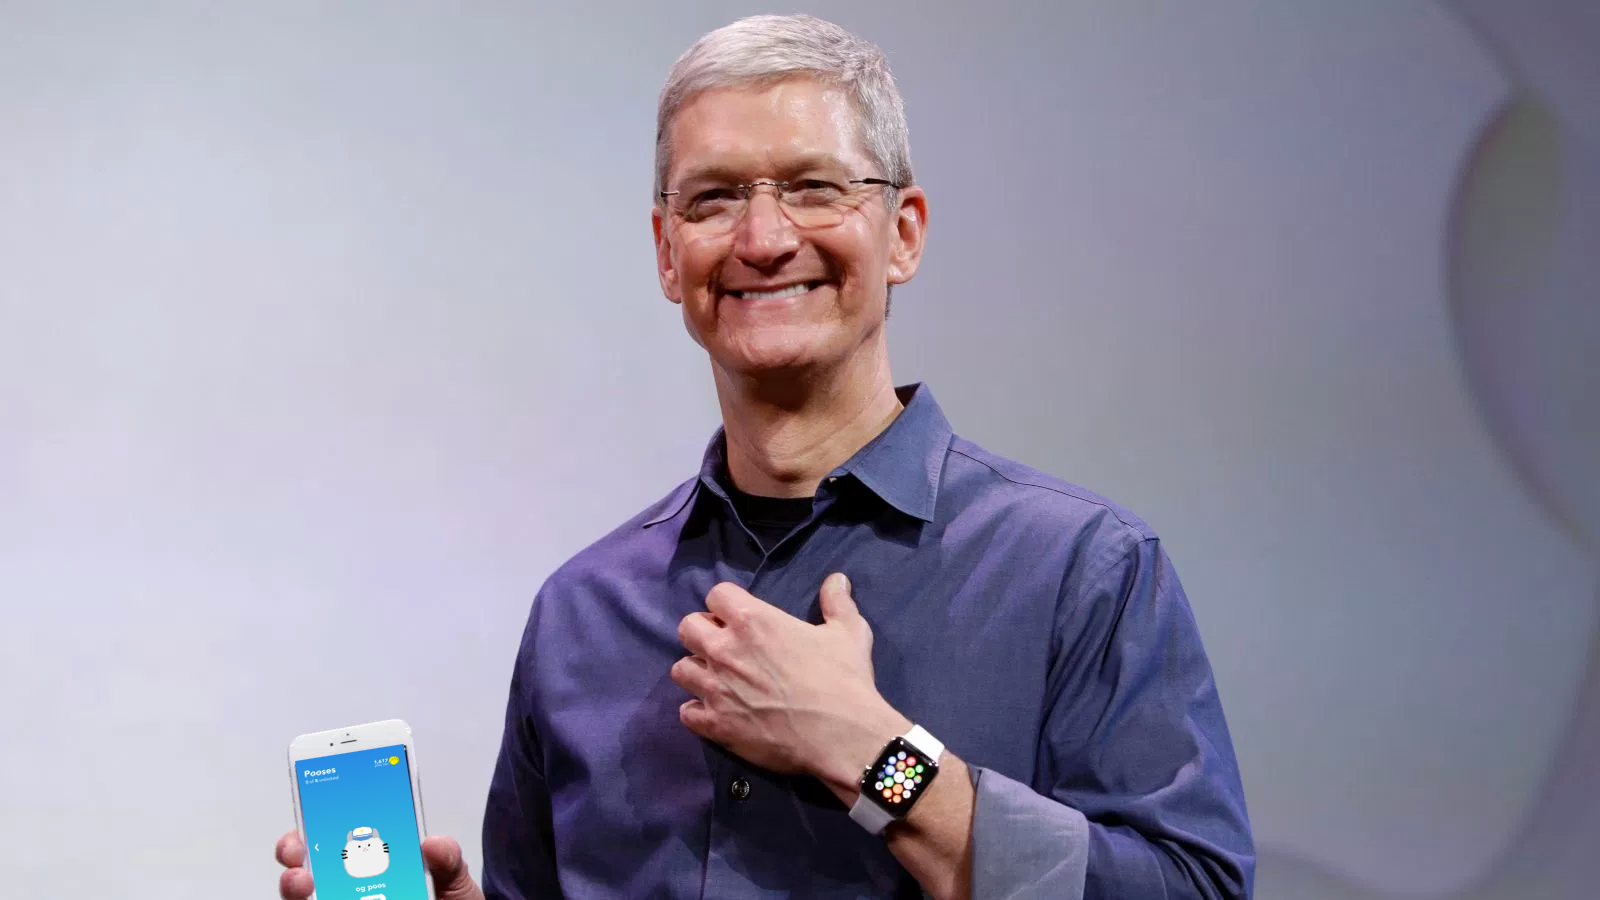 1600x900 - Tim Cook Wallpapers 18